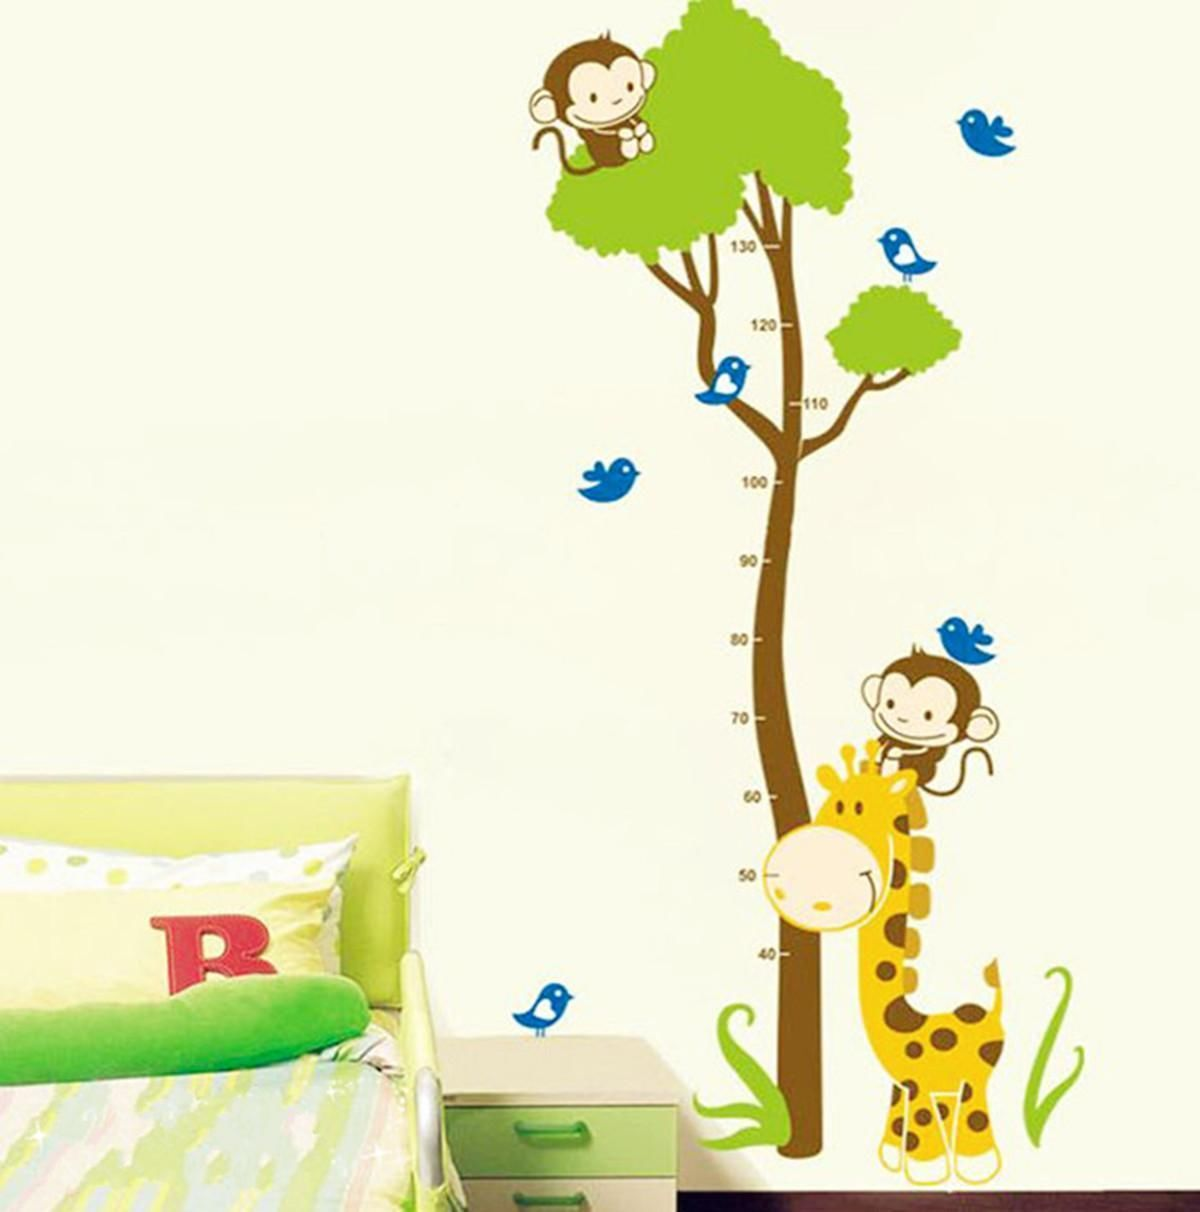 Vinilo Decorativo Pared Vinilo Decorativo De Pared Medidor Infantil Monos Y árbol